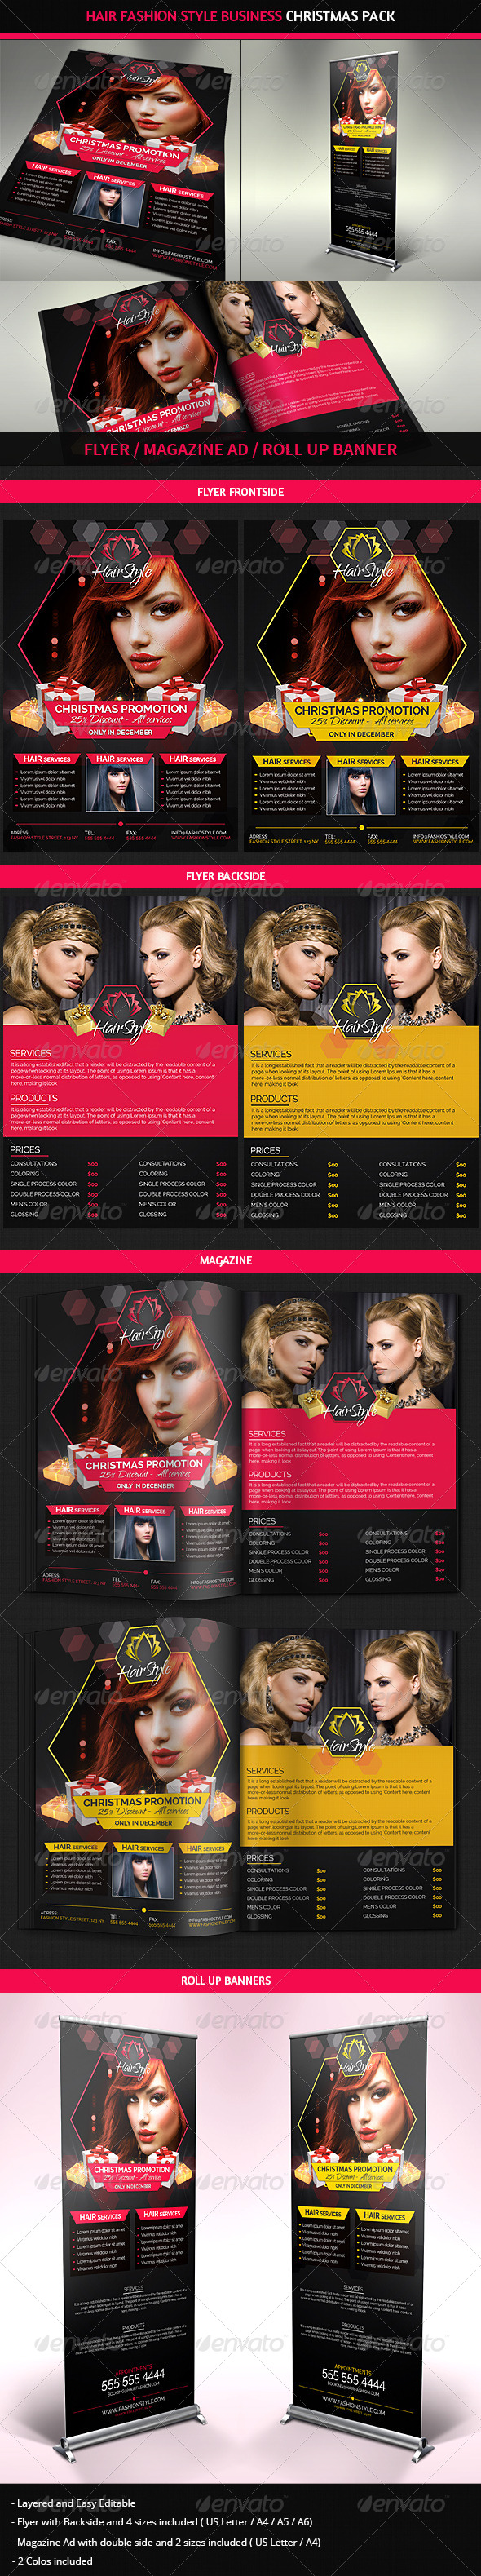 Hair Salon Fashion Christmas Advertising Pack - Commerce Flyers